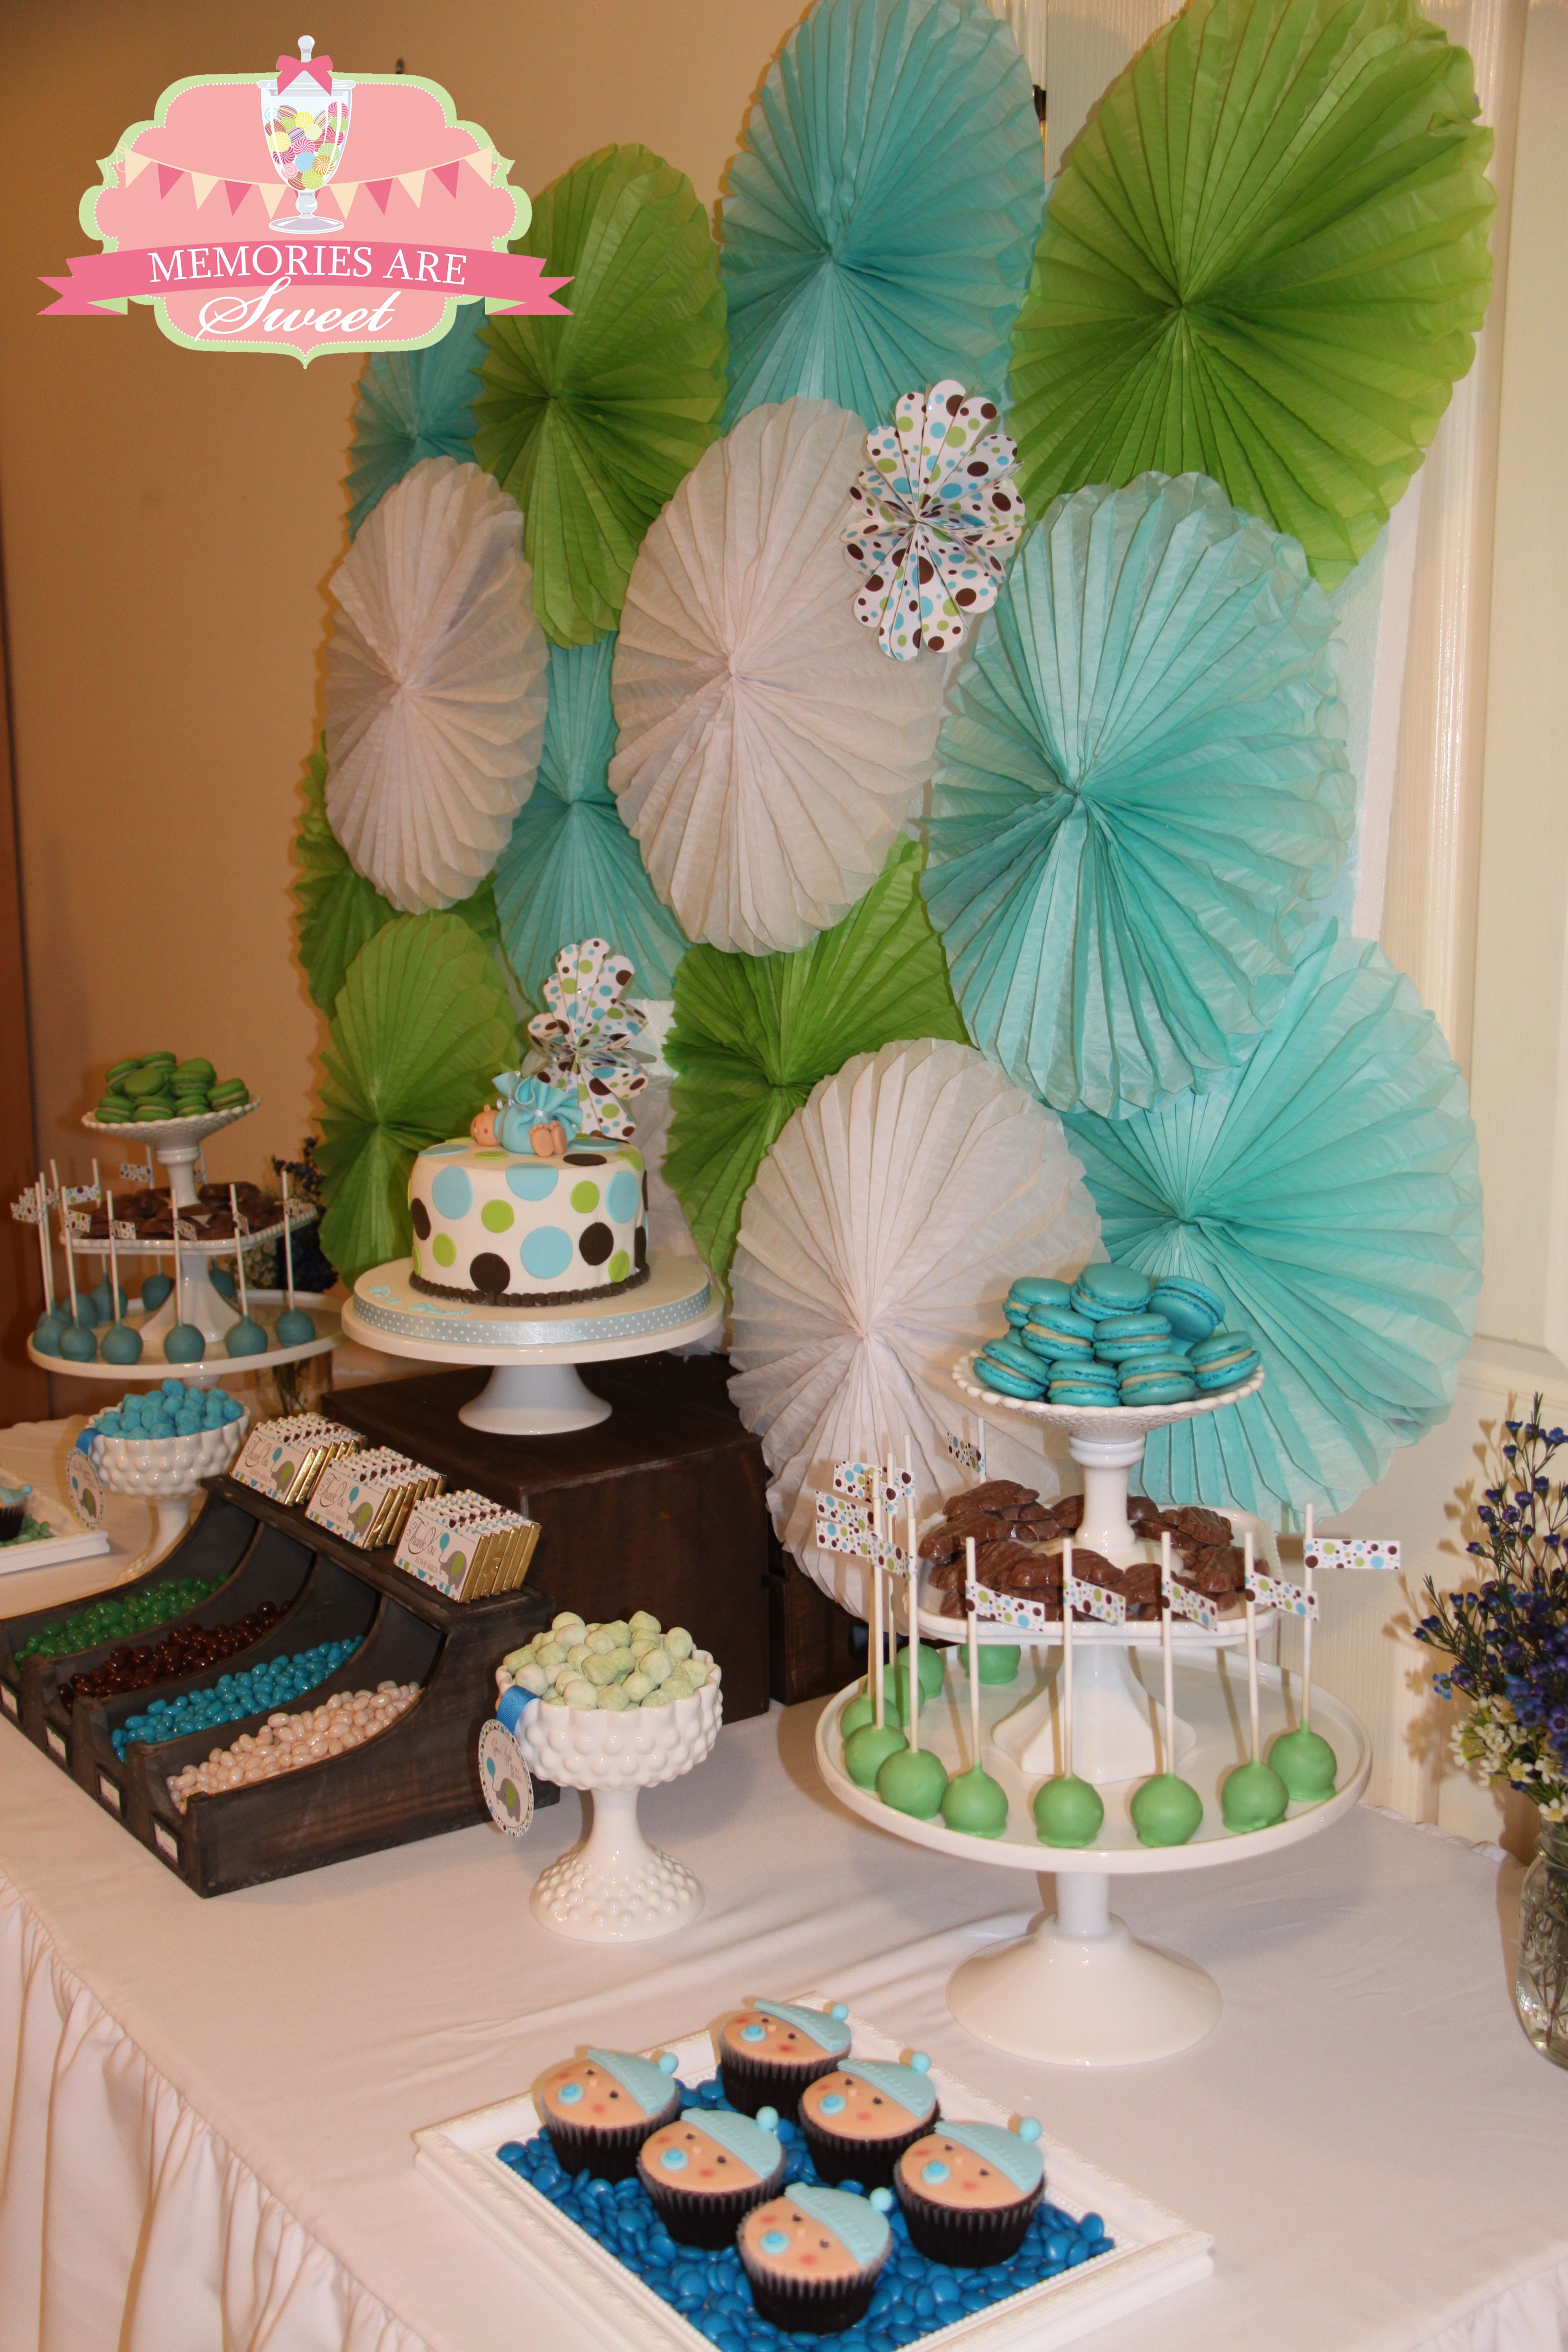 Baby Shower For A Baby Boy Blue Green Brown Polka Dots Baby Elephant Theme Styled Girl Baby Shower Decorations Polka Dot Baby Shower Baby Shower Sweets